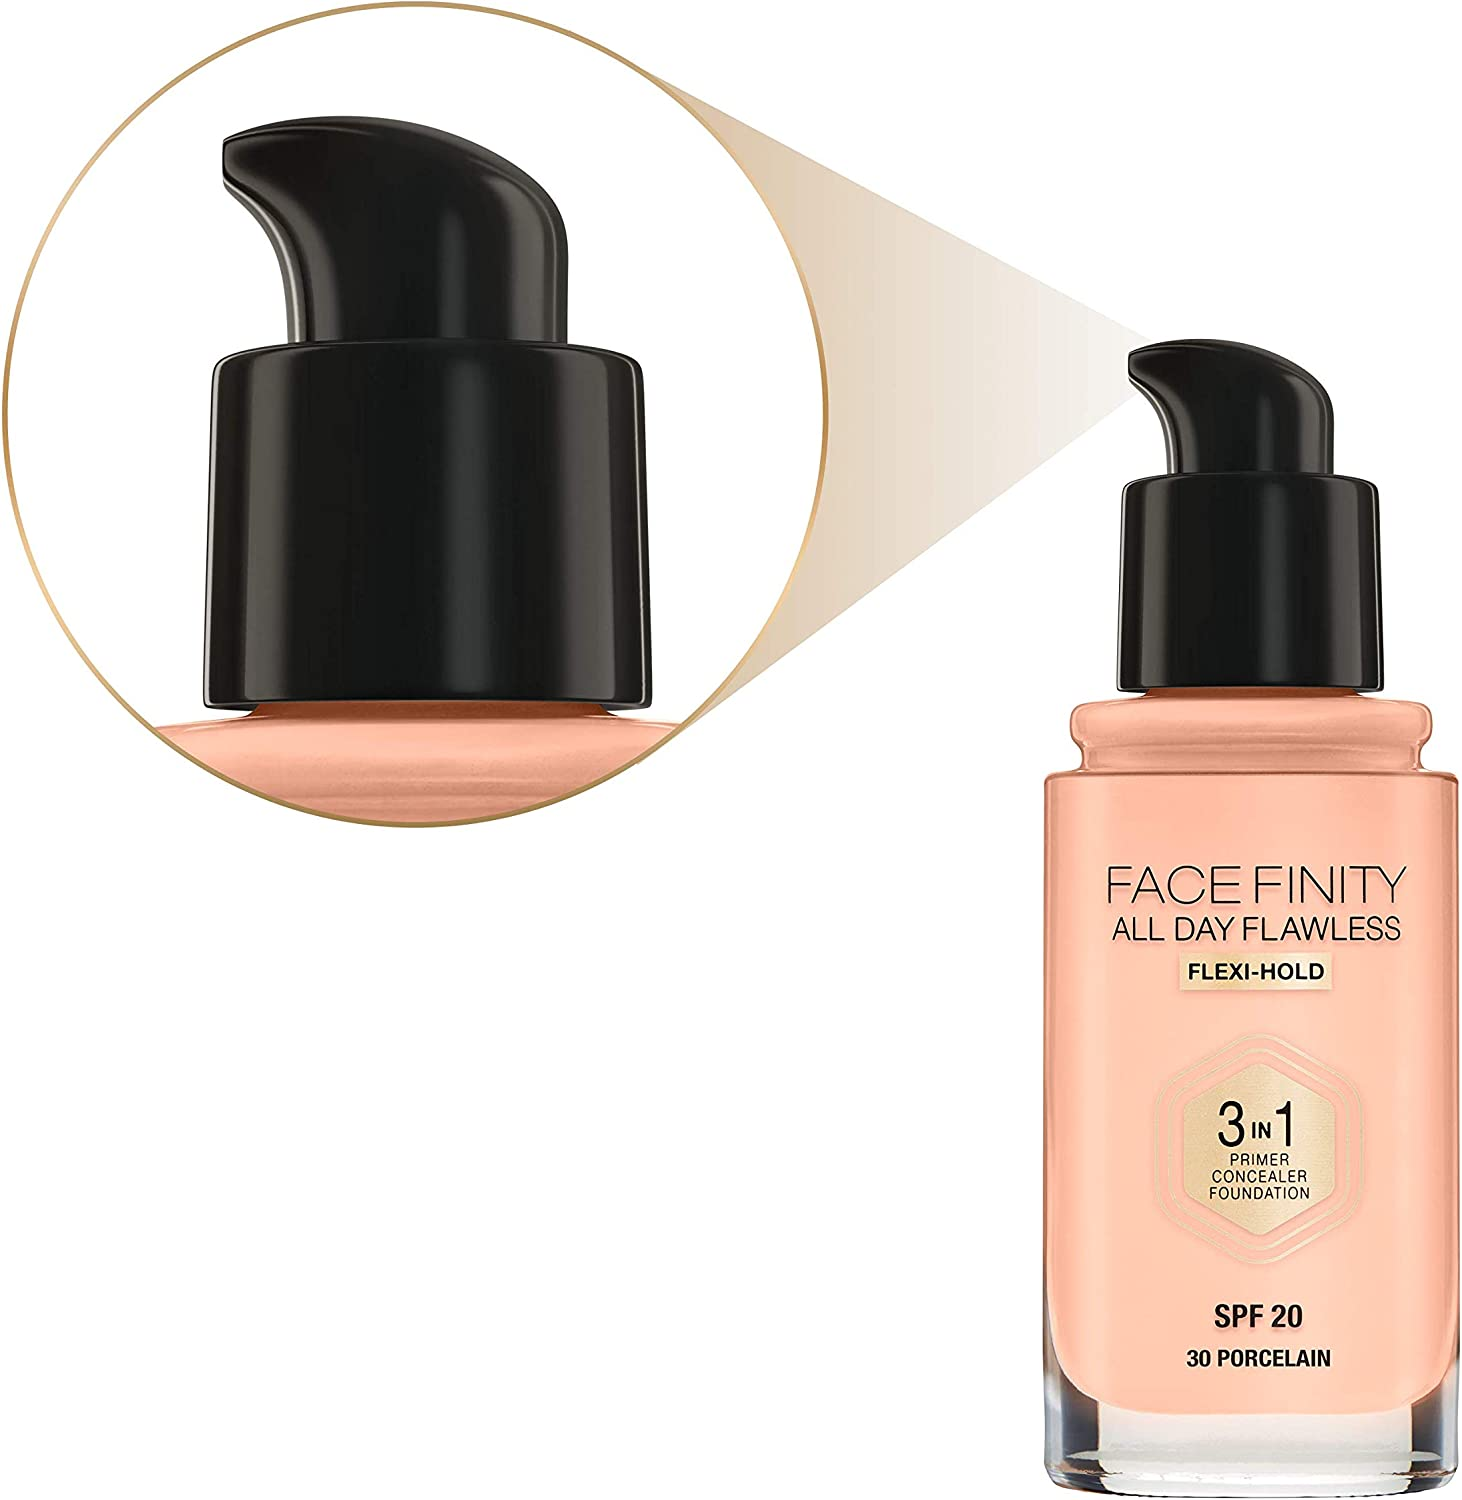 Max Factor Facefinity All Day Flawless 3 In 1 Foundation SPF 20, No. 30 Porcelain